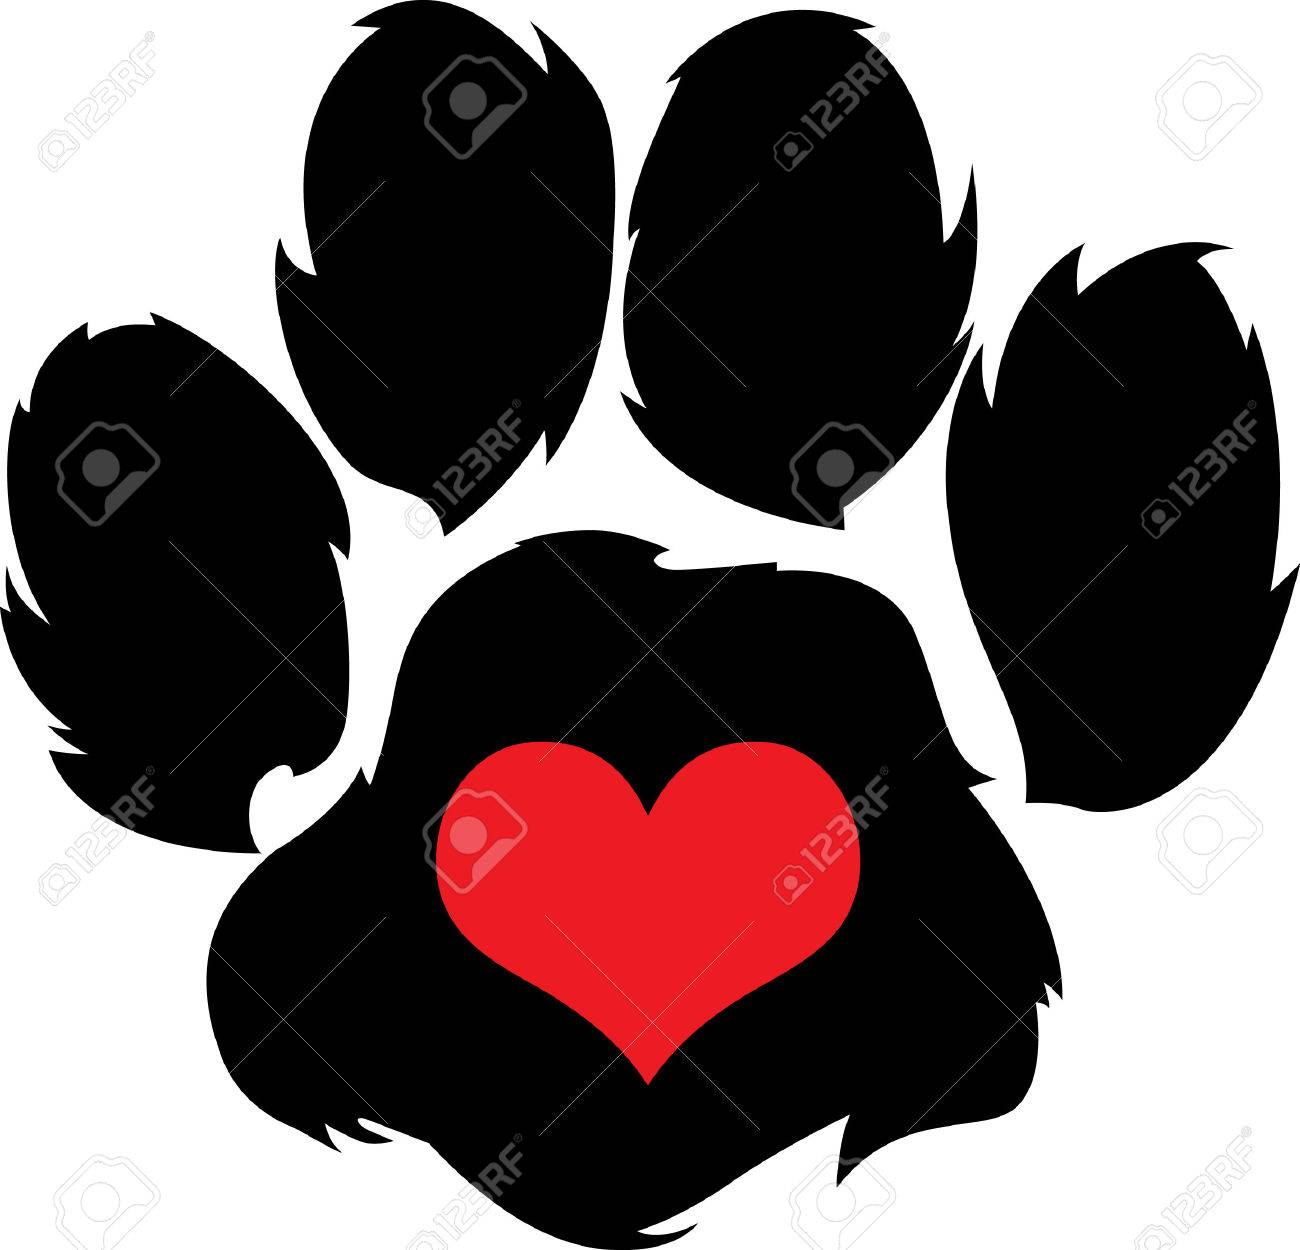 Send your friends these cute paw prints! My dog walks all over me. Its sure to bring a smile! - 45096510